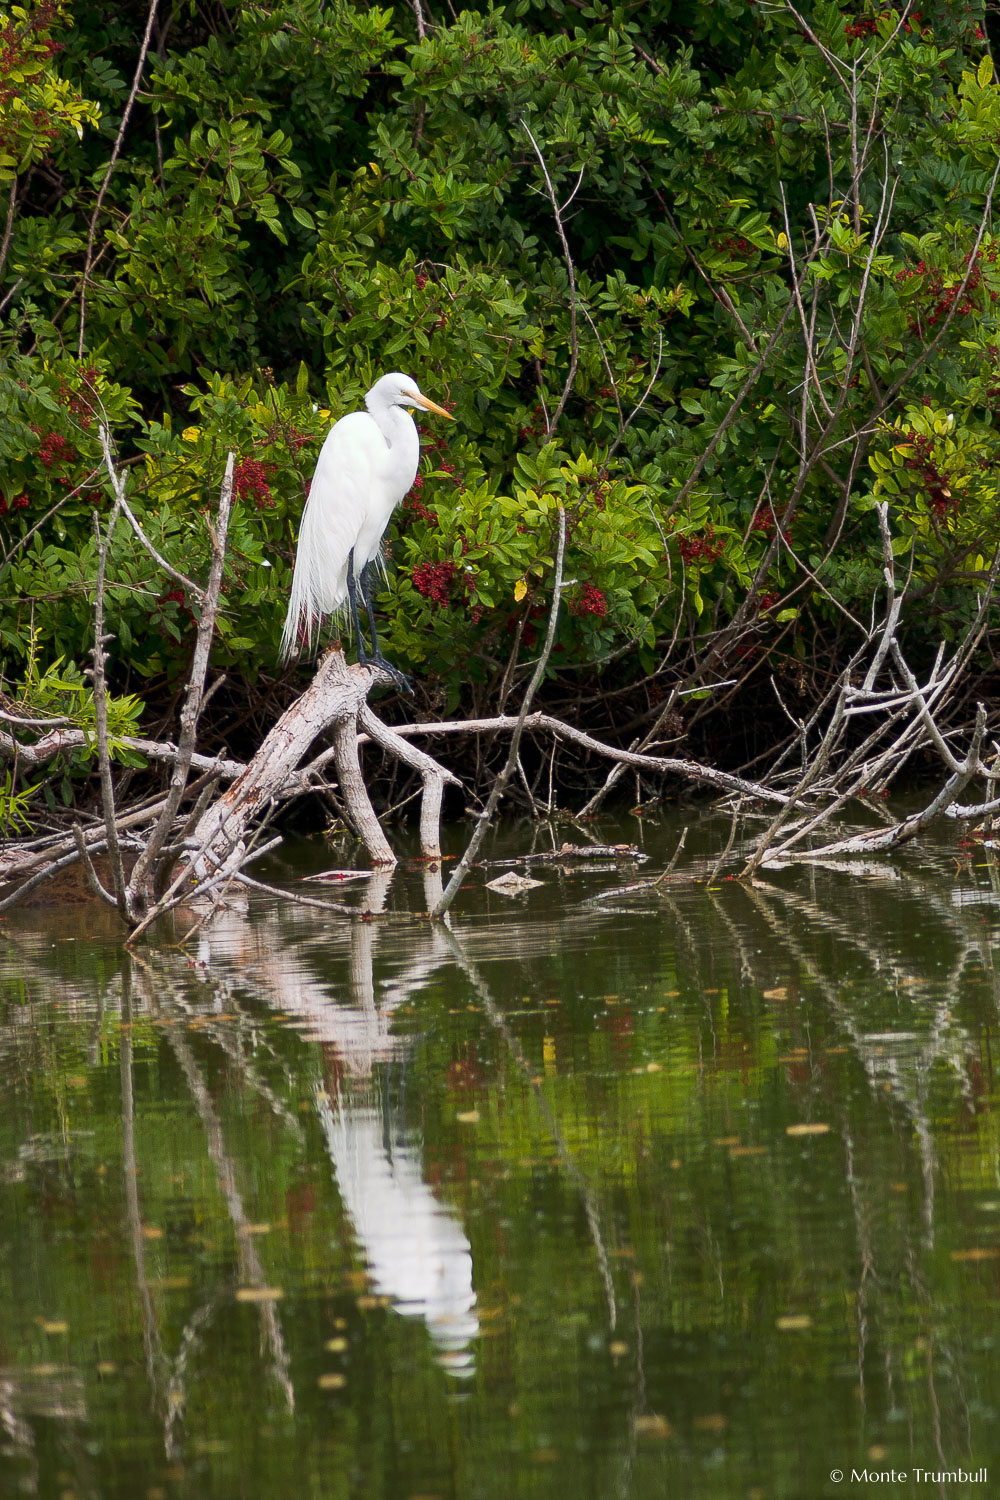 MT-20060303-095618-0186-Florida-Venice-Rookery-great-egret-reflection.jpg